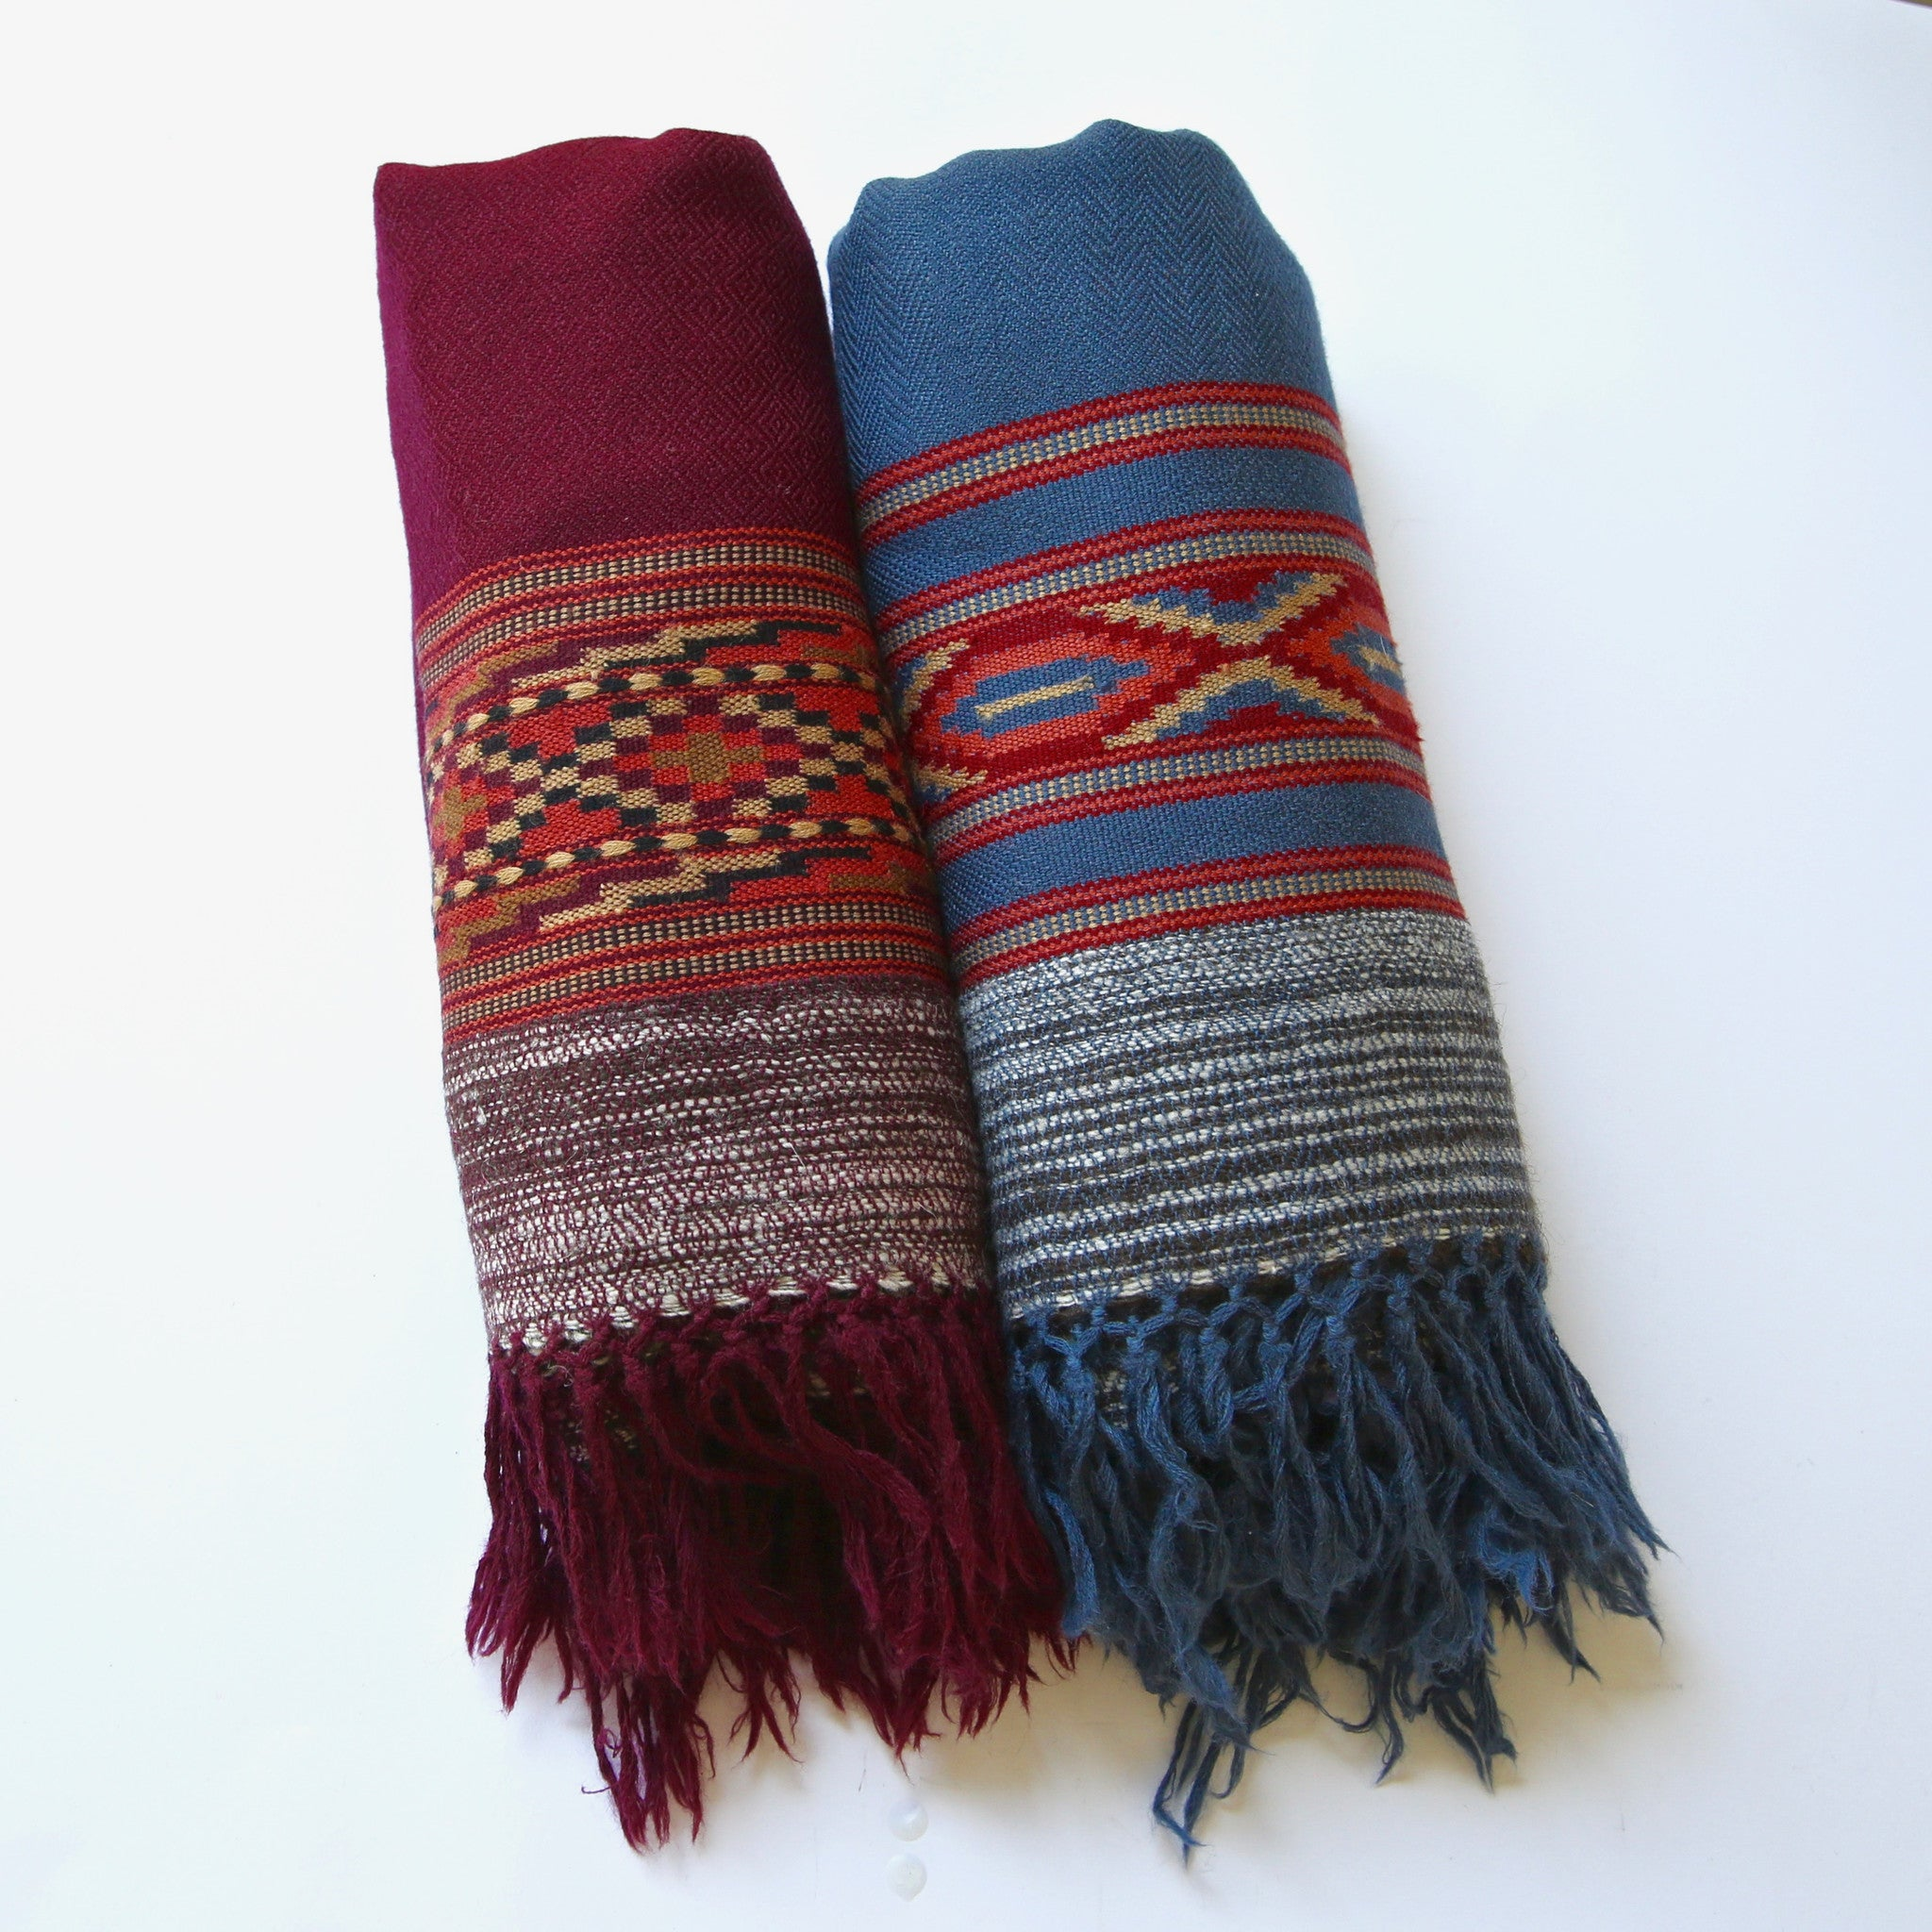 Kullu Wool Shawls - Traditional Large Border